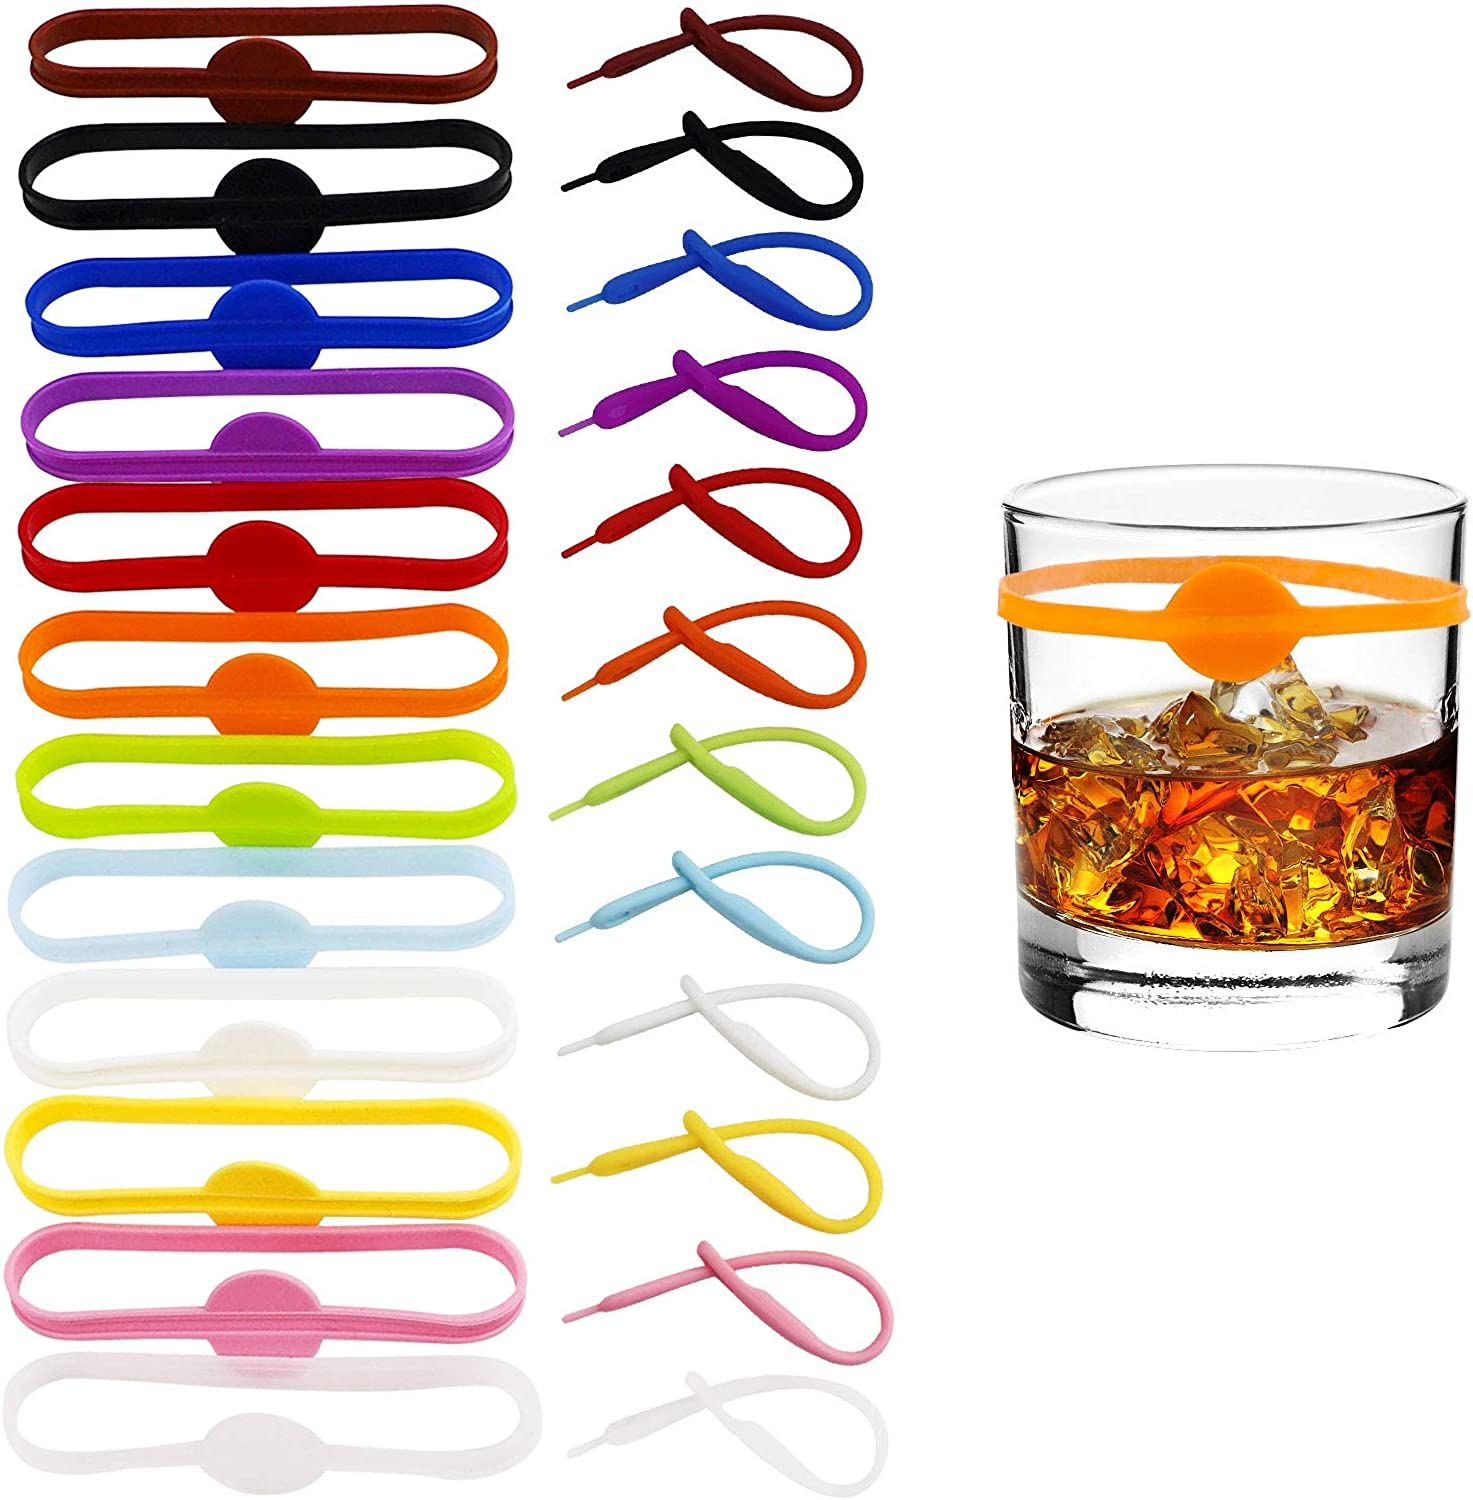 AWF Tomrrom 24Pcs Wine Glass Tag, Cocktail Drink Markers, Glass Tags, Suitable for Bottle Identification for Parties or Families